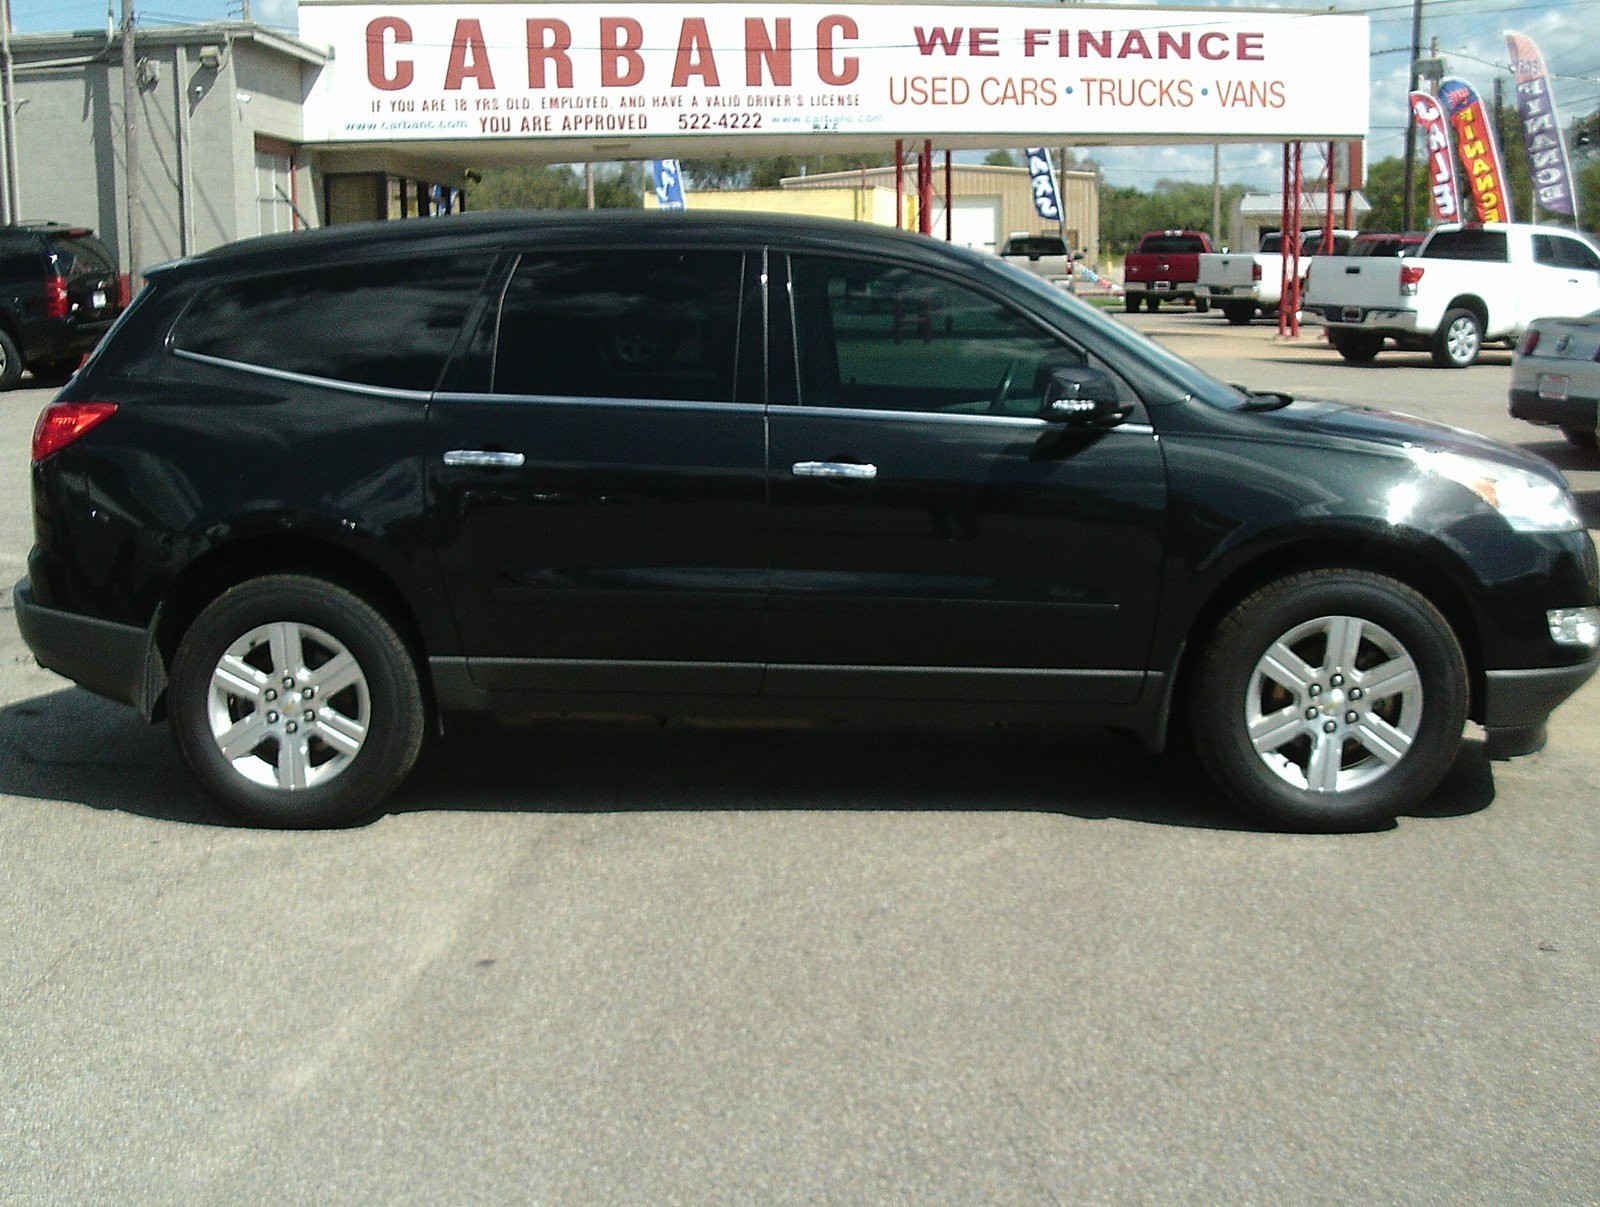 Car for Sale with Bad Credit New Used Cars Bad Credit Near Me Unique Used Vehicles for Sale In